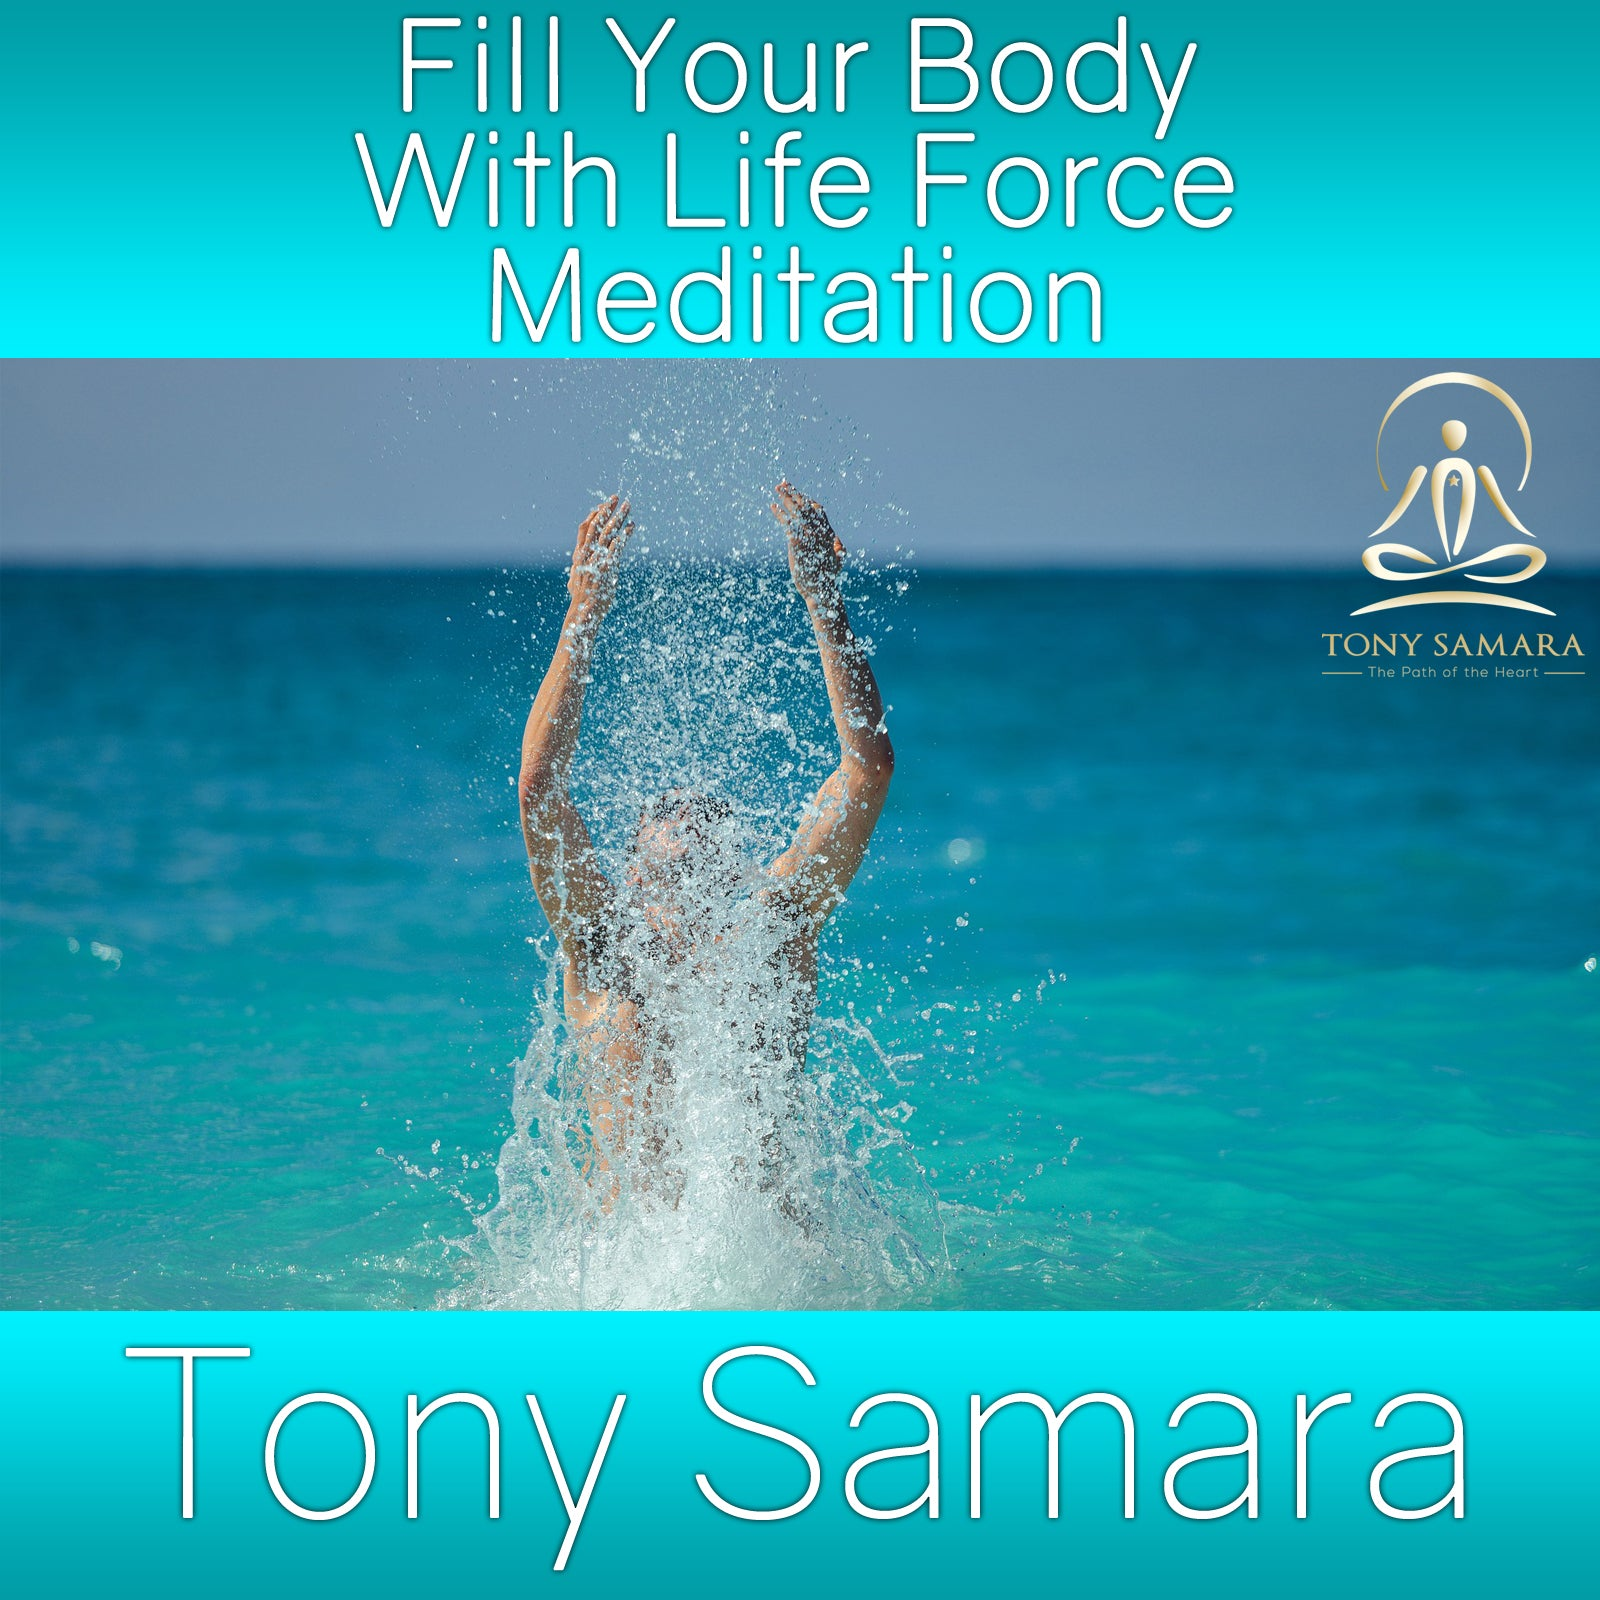 Fill Your Body With Life Force Meditation (MP3 Audio Download) - Tony Samara Meditation